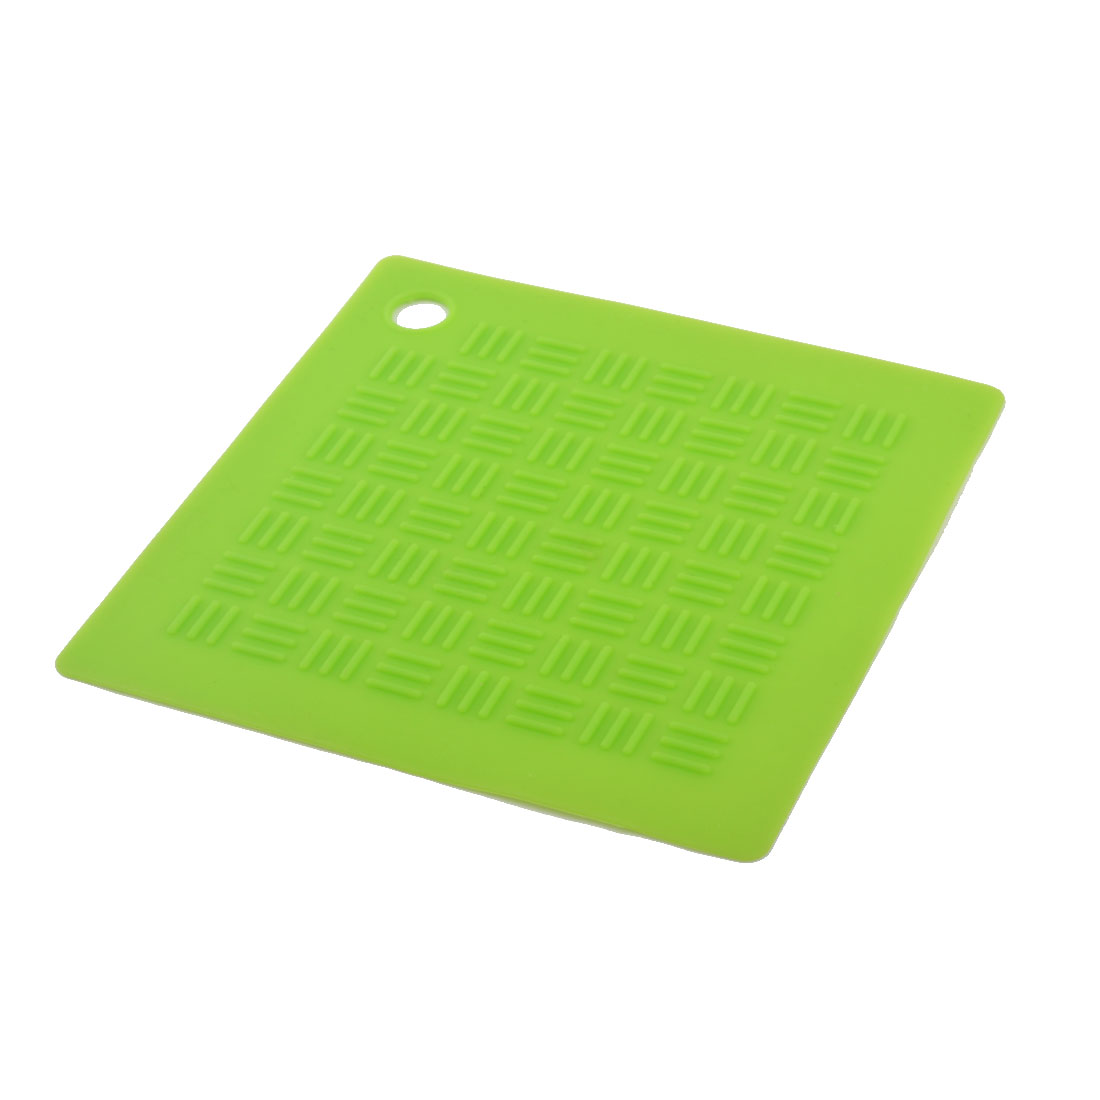 Silicone Multifunctional Nonslip Heat Resistant Mat Coaster Cushion Placemat Pad